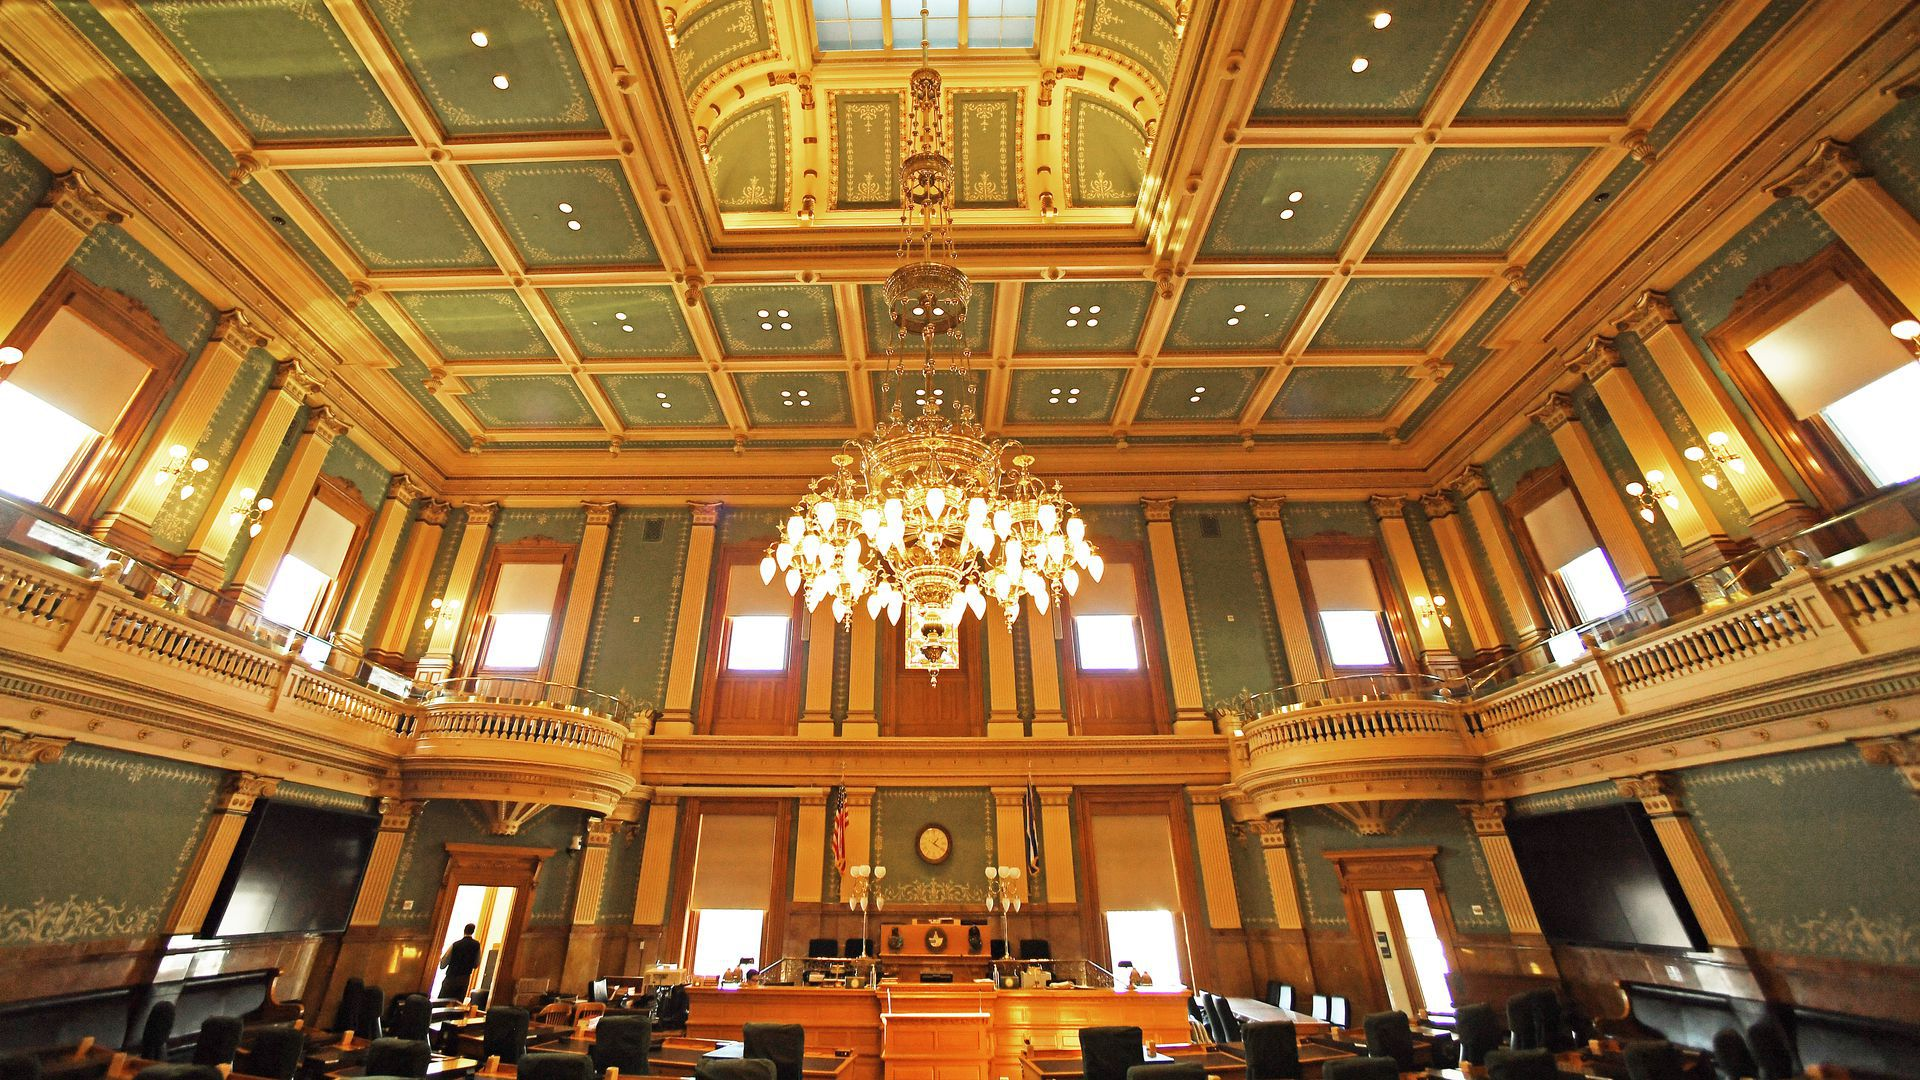 A grand room with a chandelier inside the Colorado state capitol building